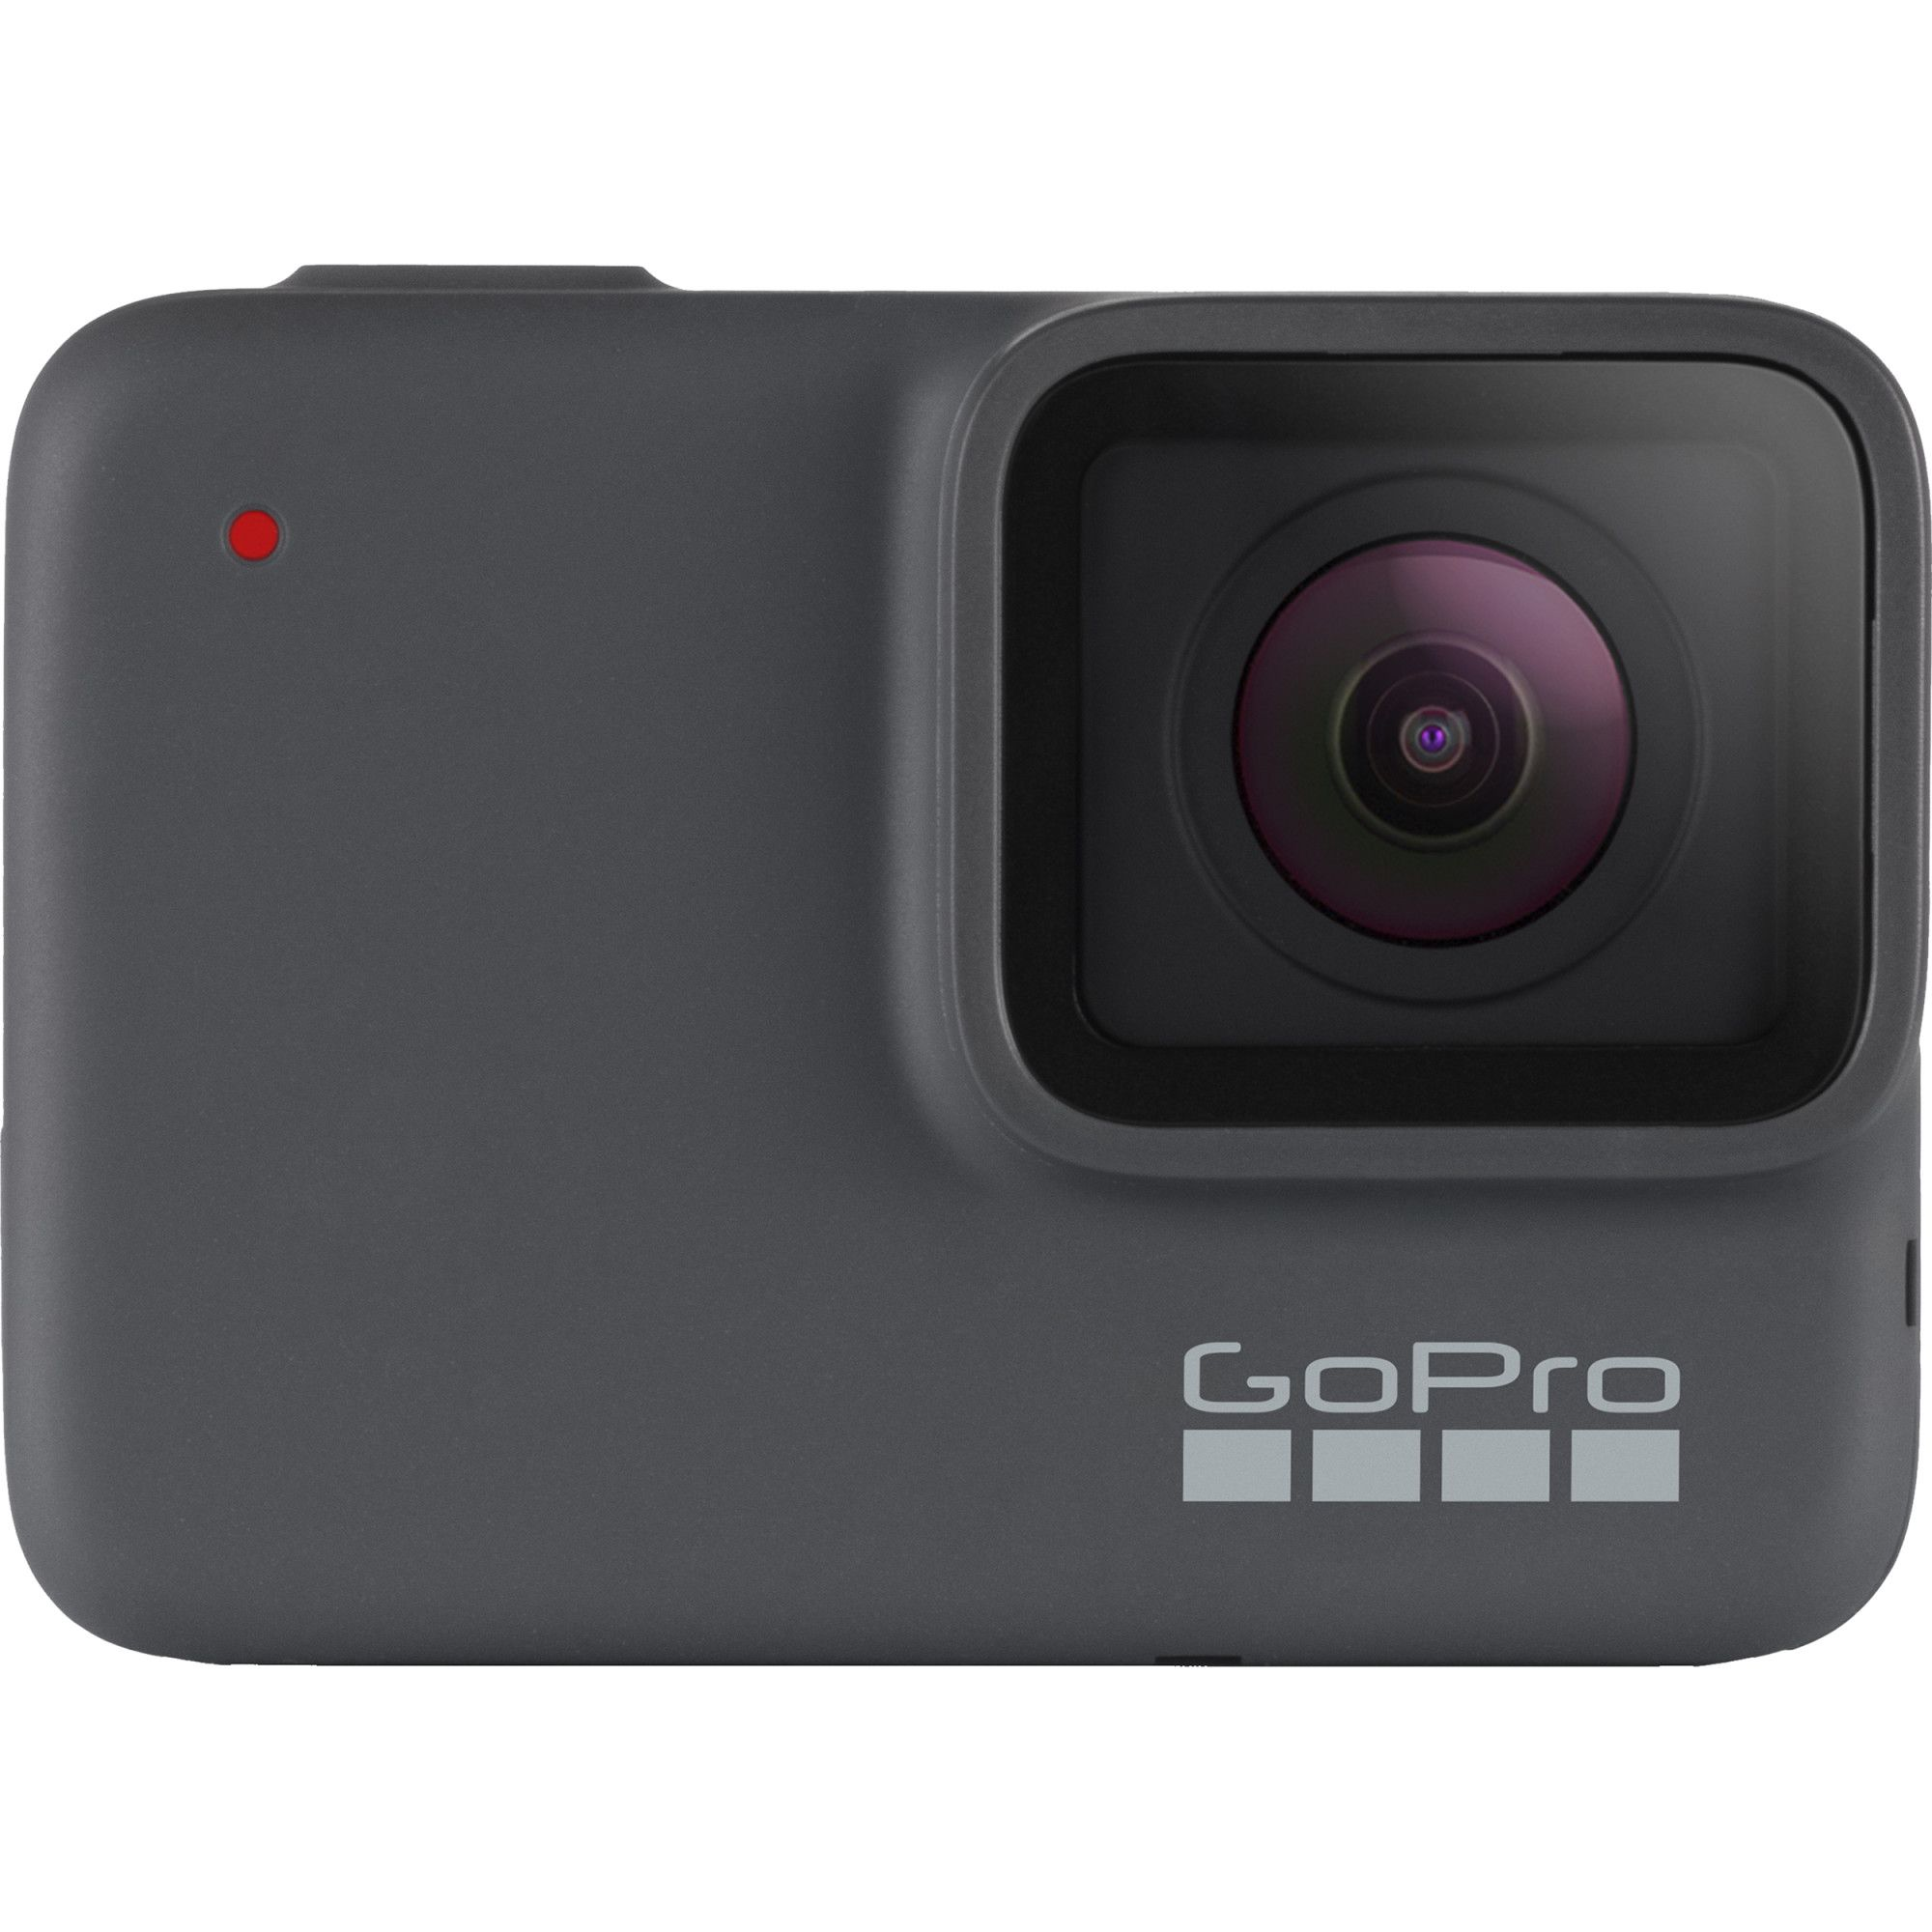 Camera Video GoPro HERO7 Silver 10MP 4K30